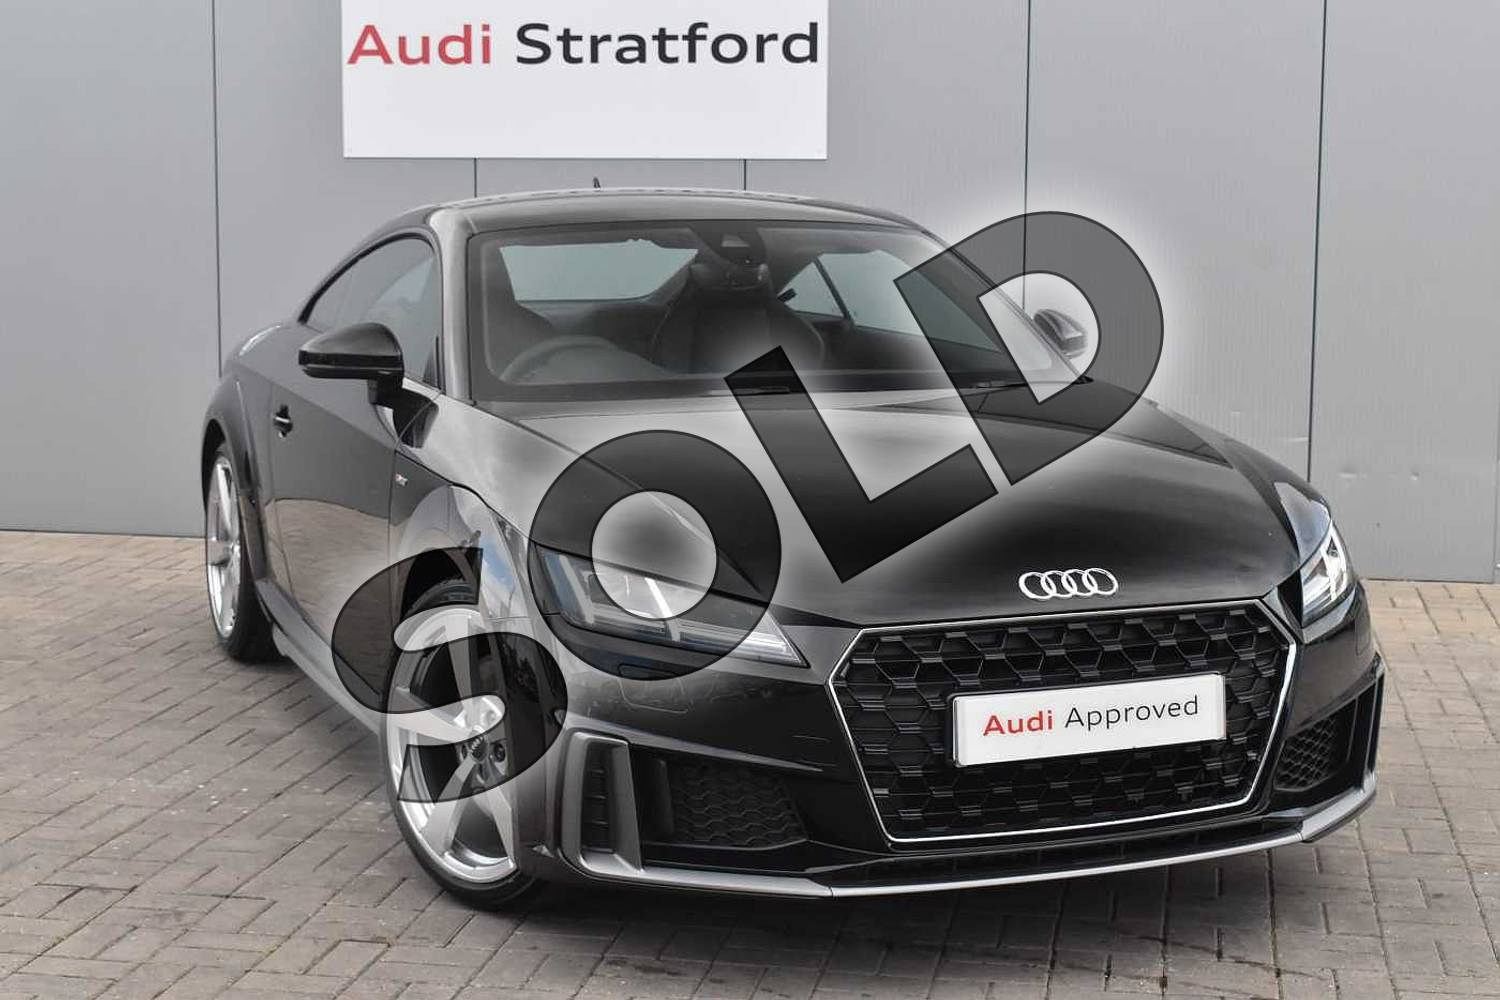 2019 Audi TT Coupe 45 TFSI S Line 2dr S Tronic in Myth Black Metallic at Stratford Audi